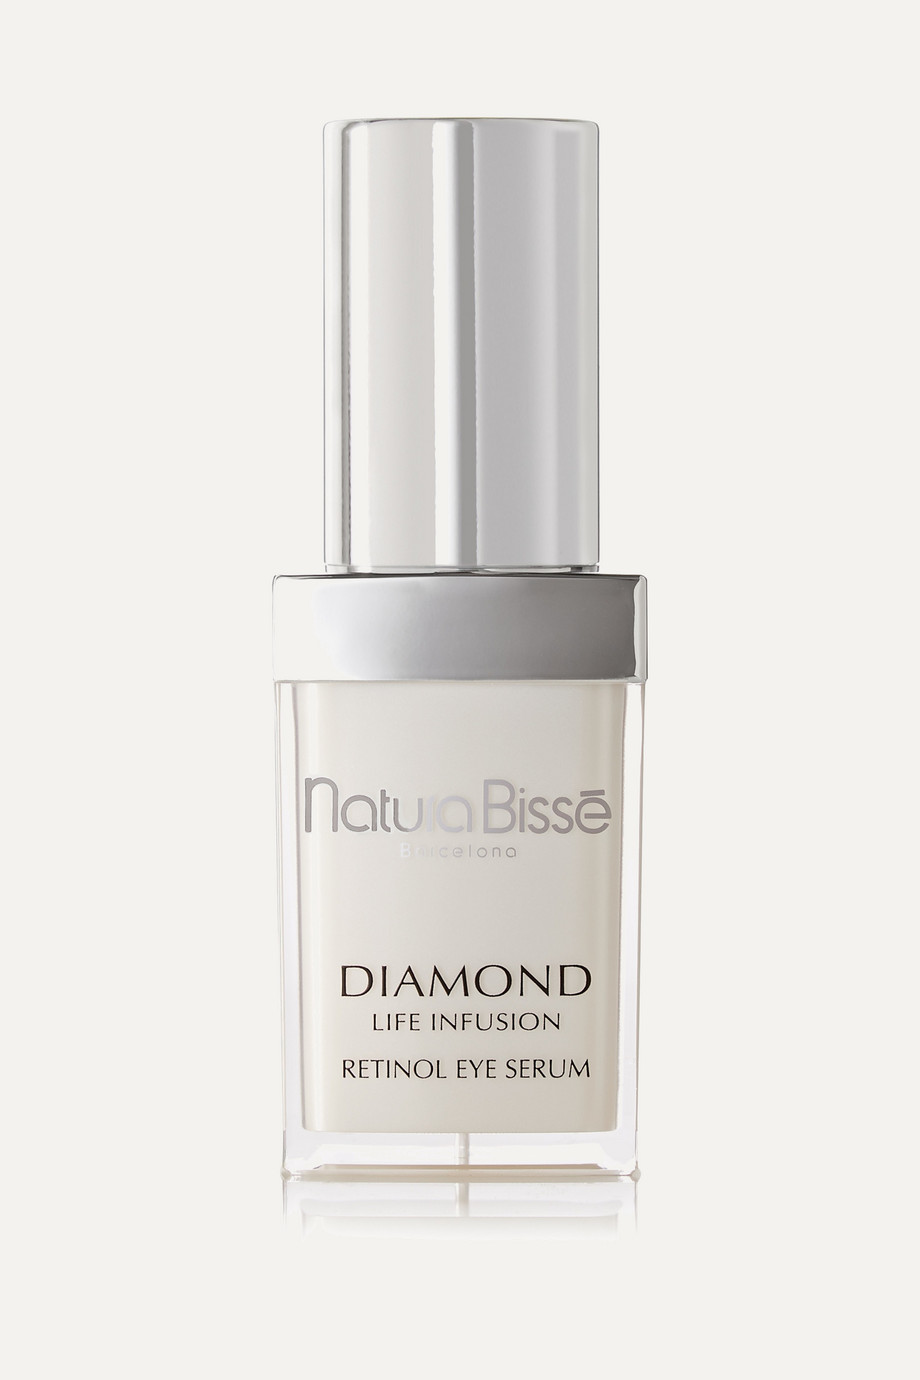 Natura Bissé Diamond Life Infusion Retinol Eye Serum, 15ml